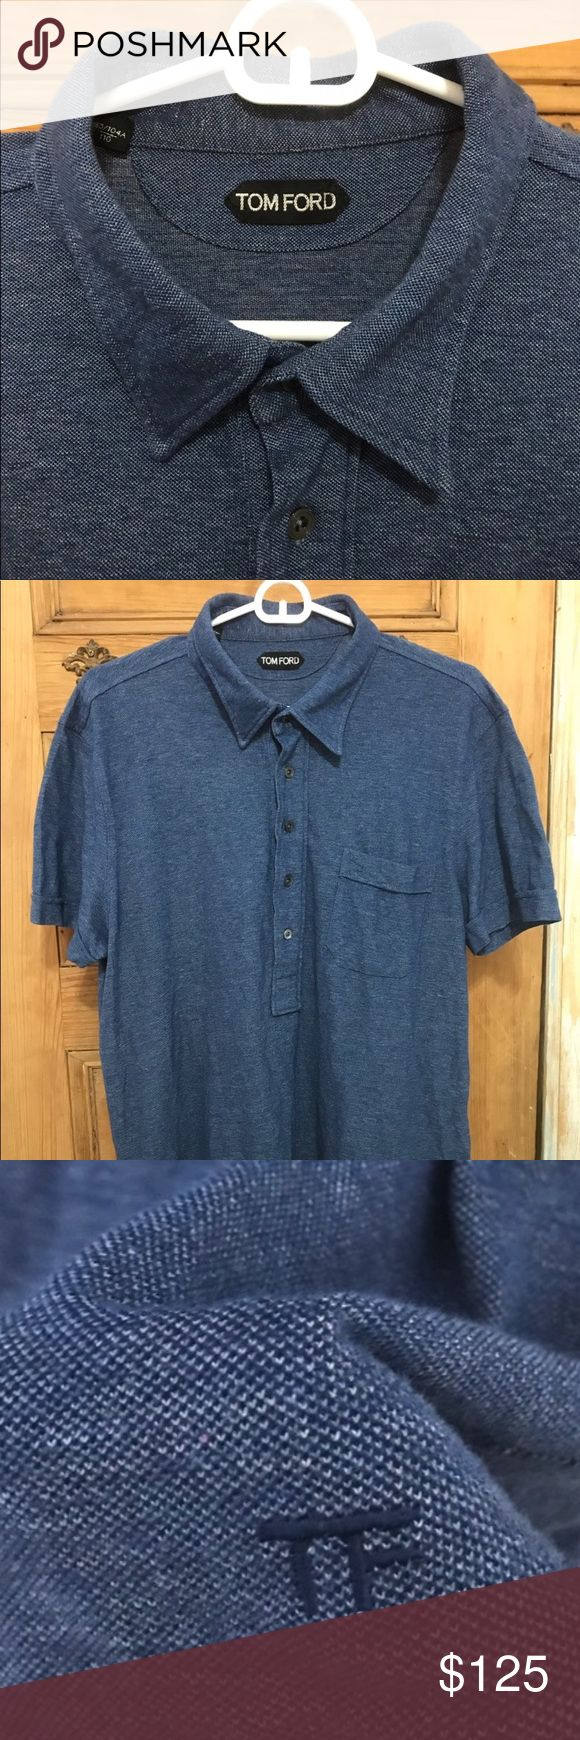 """TOM FORD POLO For sale is a Tom Ford Blue polo shirt. Shirt has 5 buttons that button down to about halfway down the shirt. Shirt is in Italian Size 54 which is about a US size LARGE or slim fit XL. Item is very thick cotton with a """"towelling"""" texture, sleeves are cuffed at the end and there is a small TF (Tom Ford) logo seen at the bottom right-hand corner of the shirt. Item has been used once, and only tried on a few times before purchase. Retails for $790! Tom Ford Shirts Polos"""